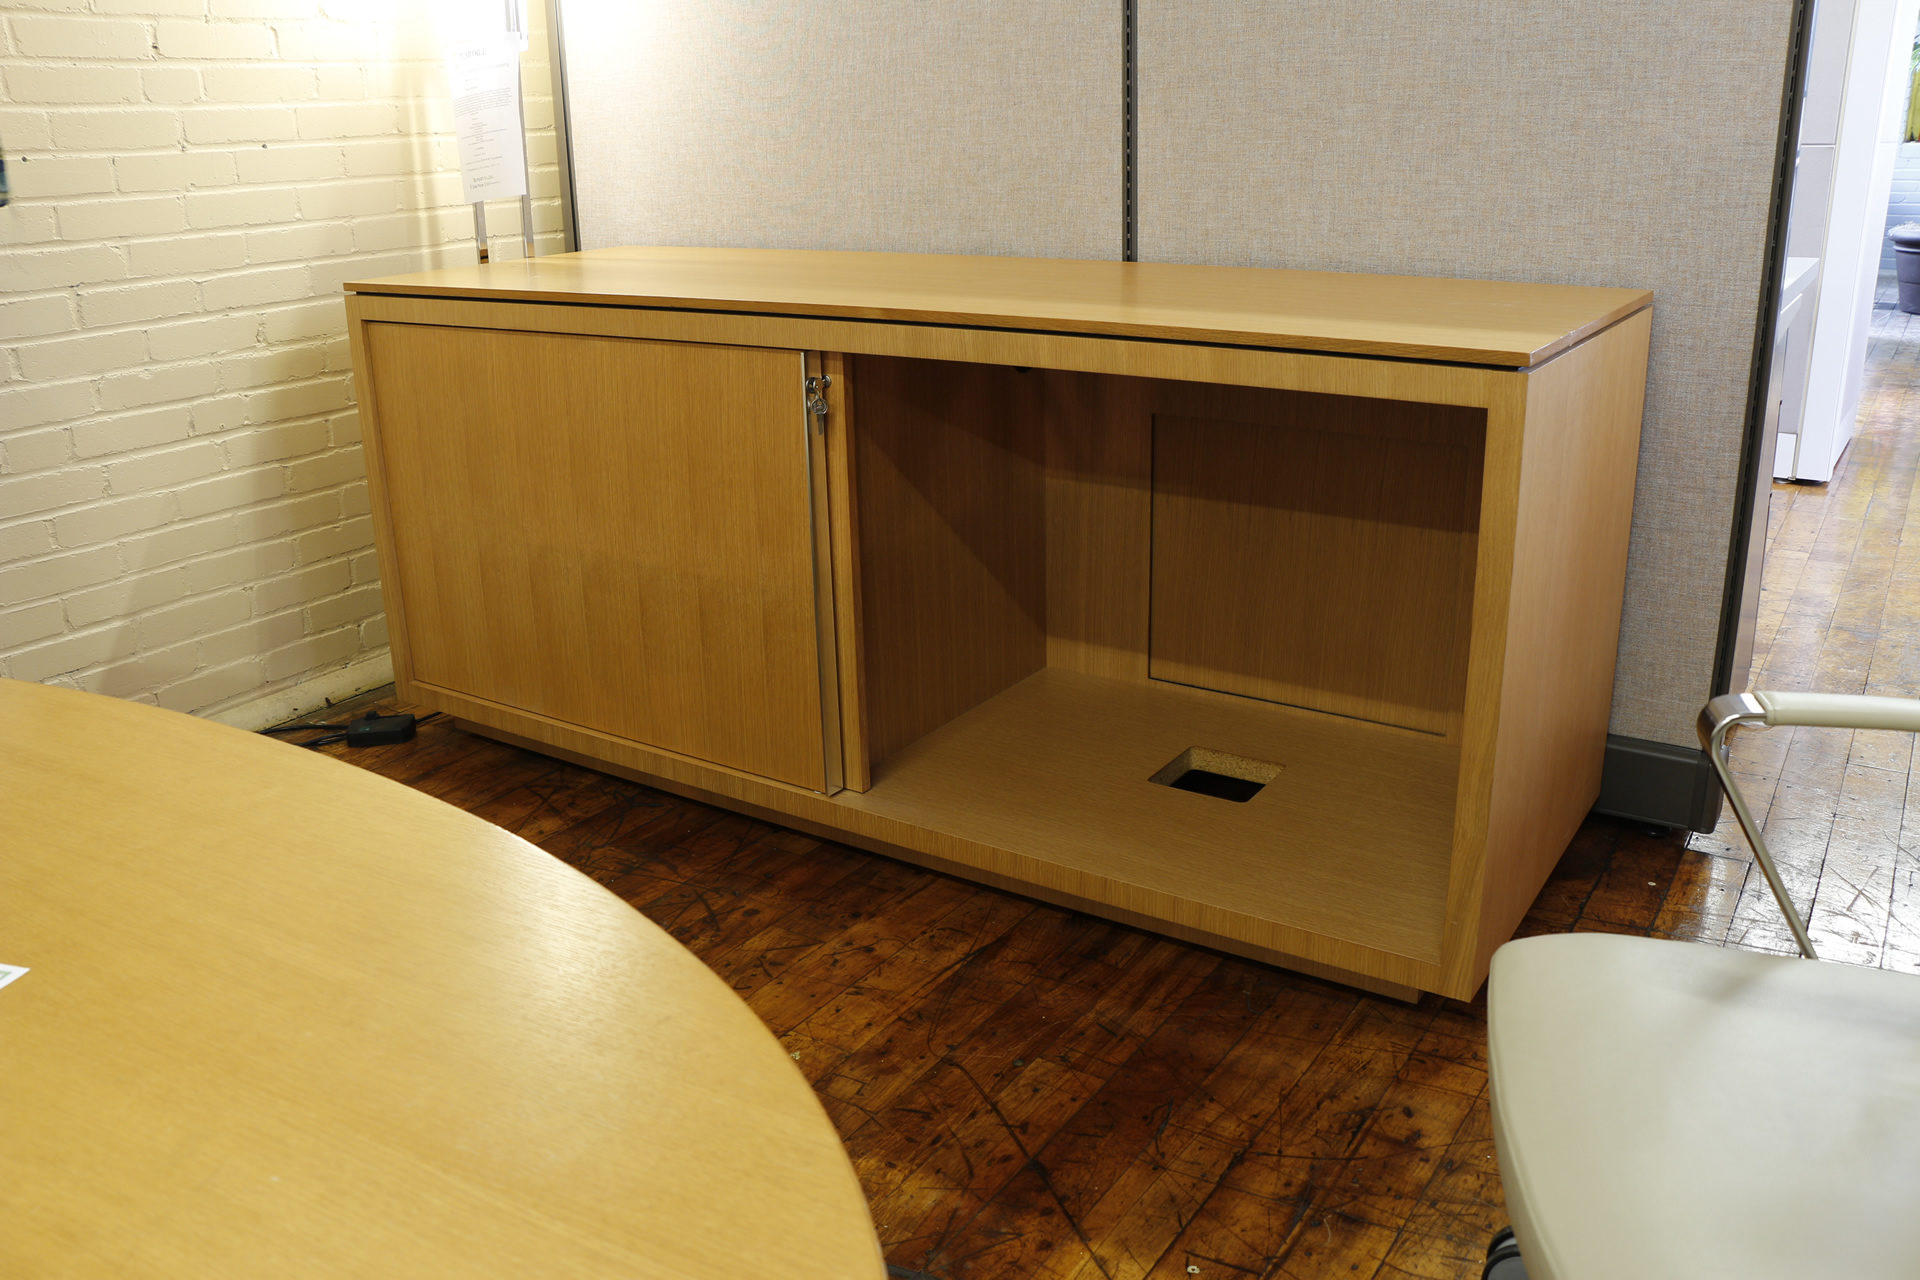 peartreeofficefurniture_peartreeofficefurniture_mg_4100.jpg